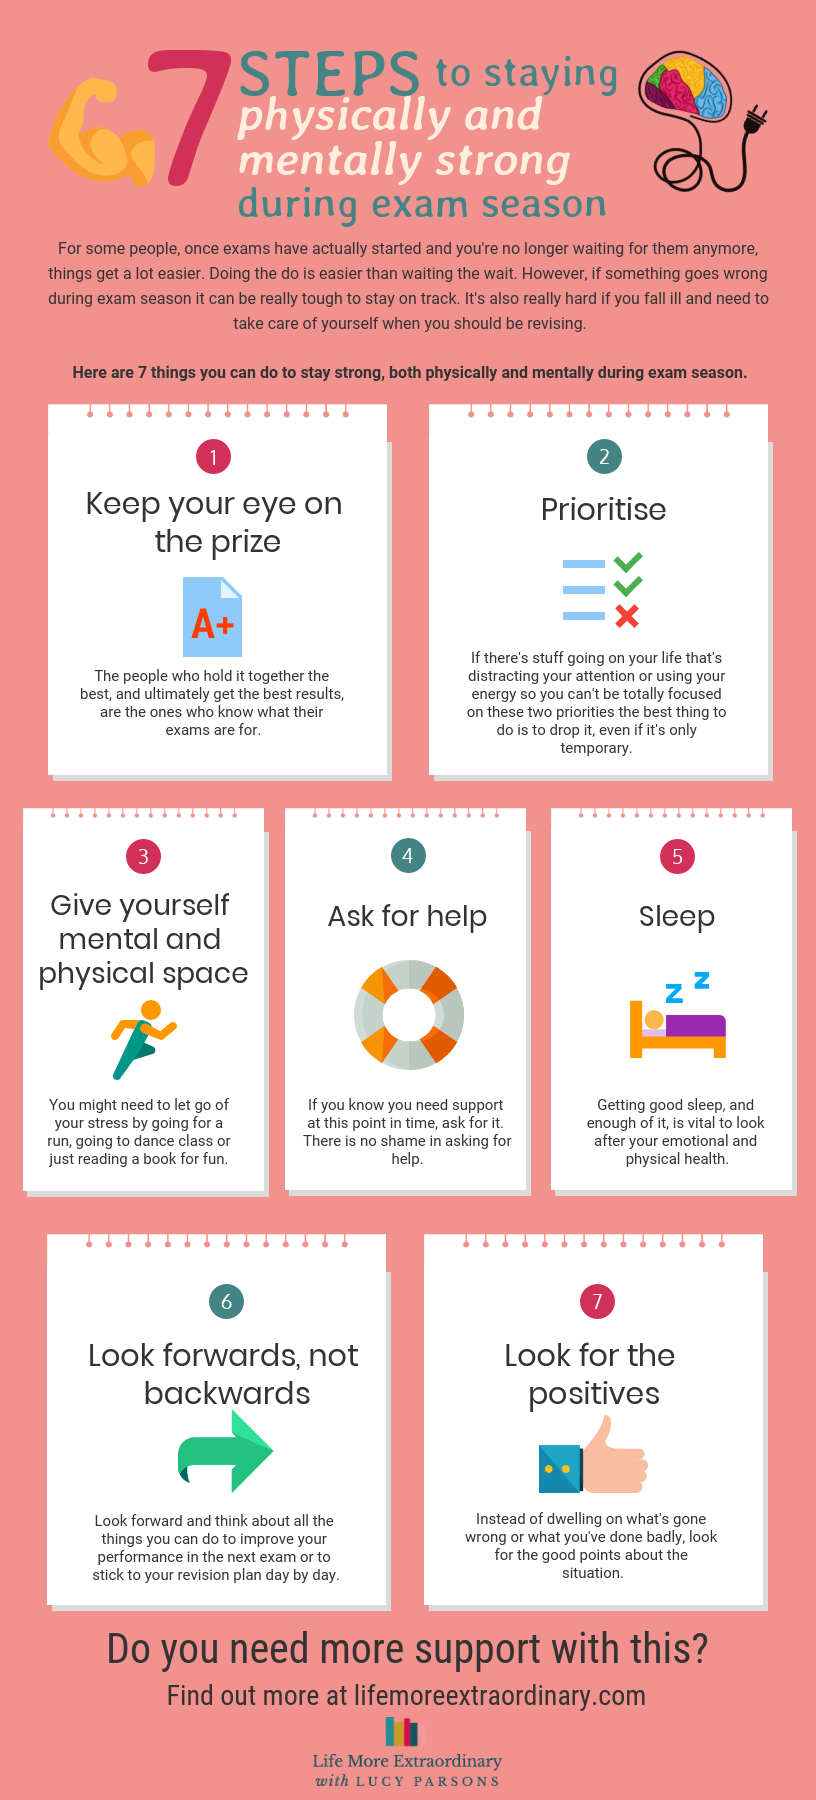 7 steps to taking care of your physical and mental health during exam season #GCSEs #ALevels #MentalHealth #parentingteens